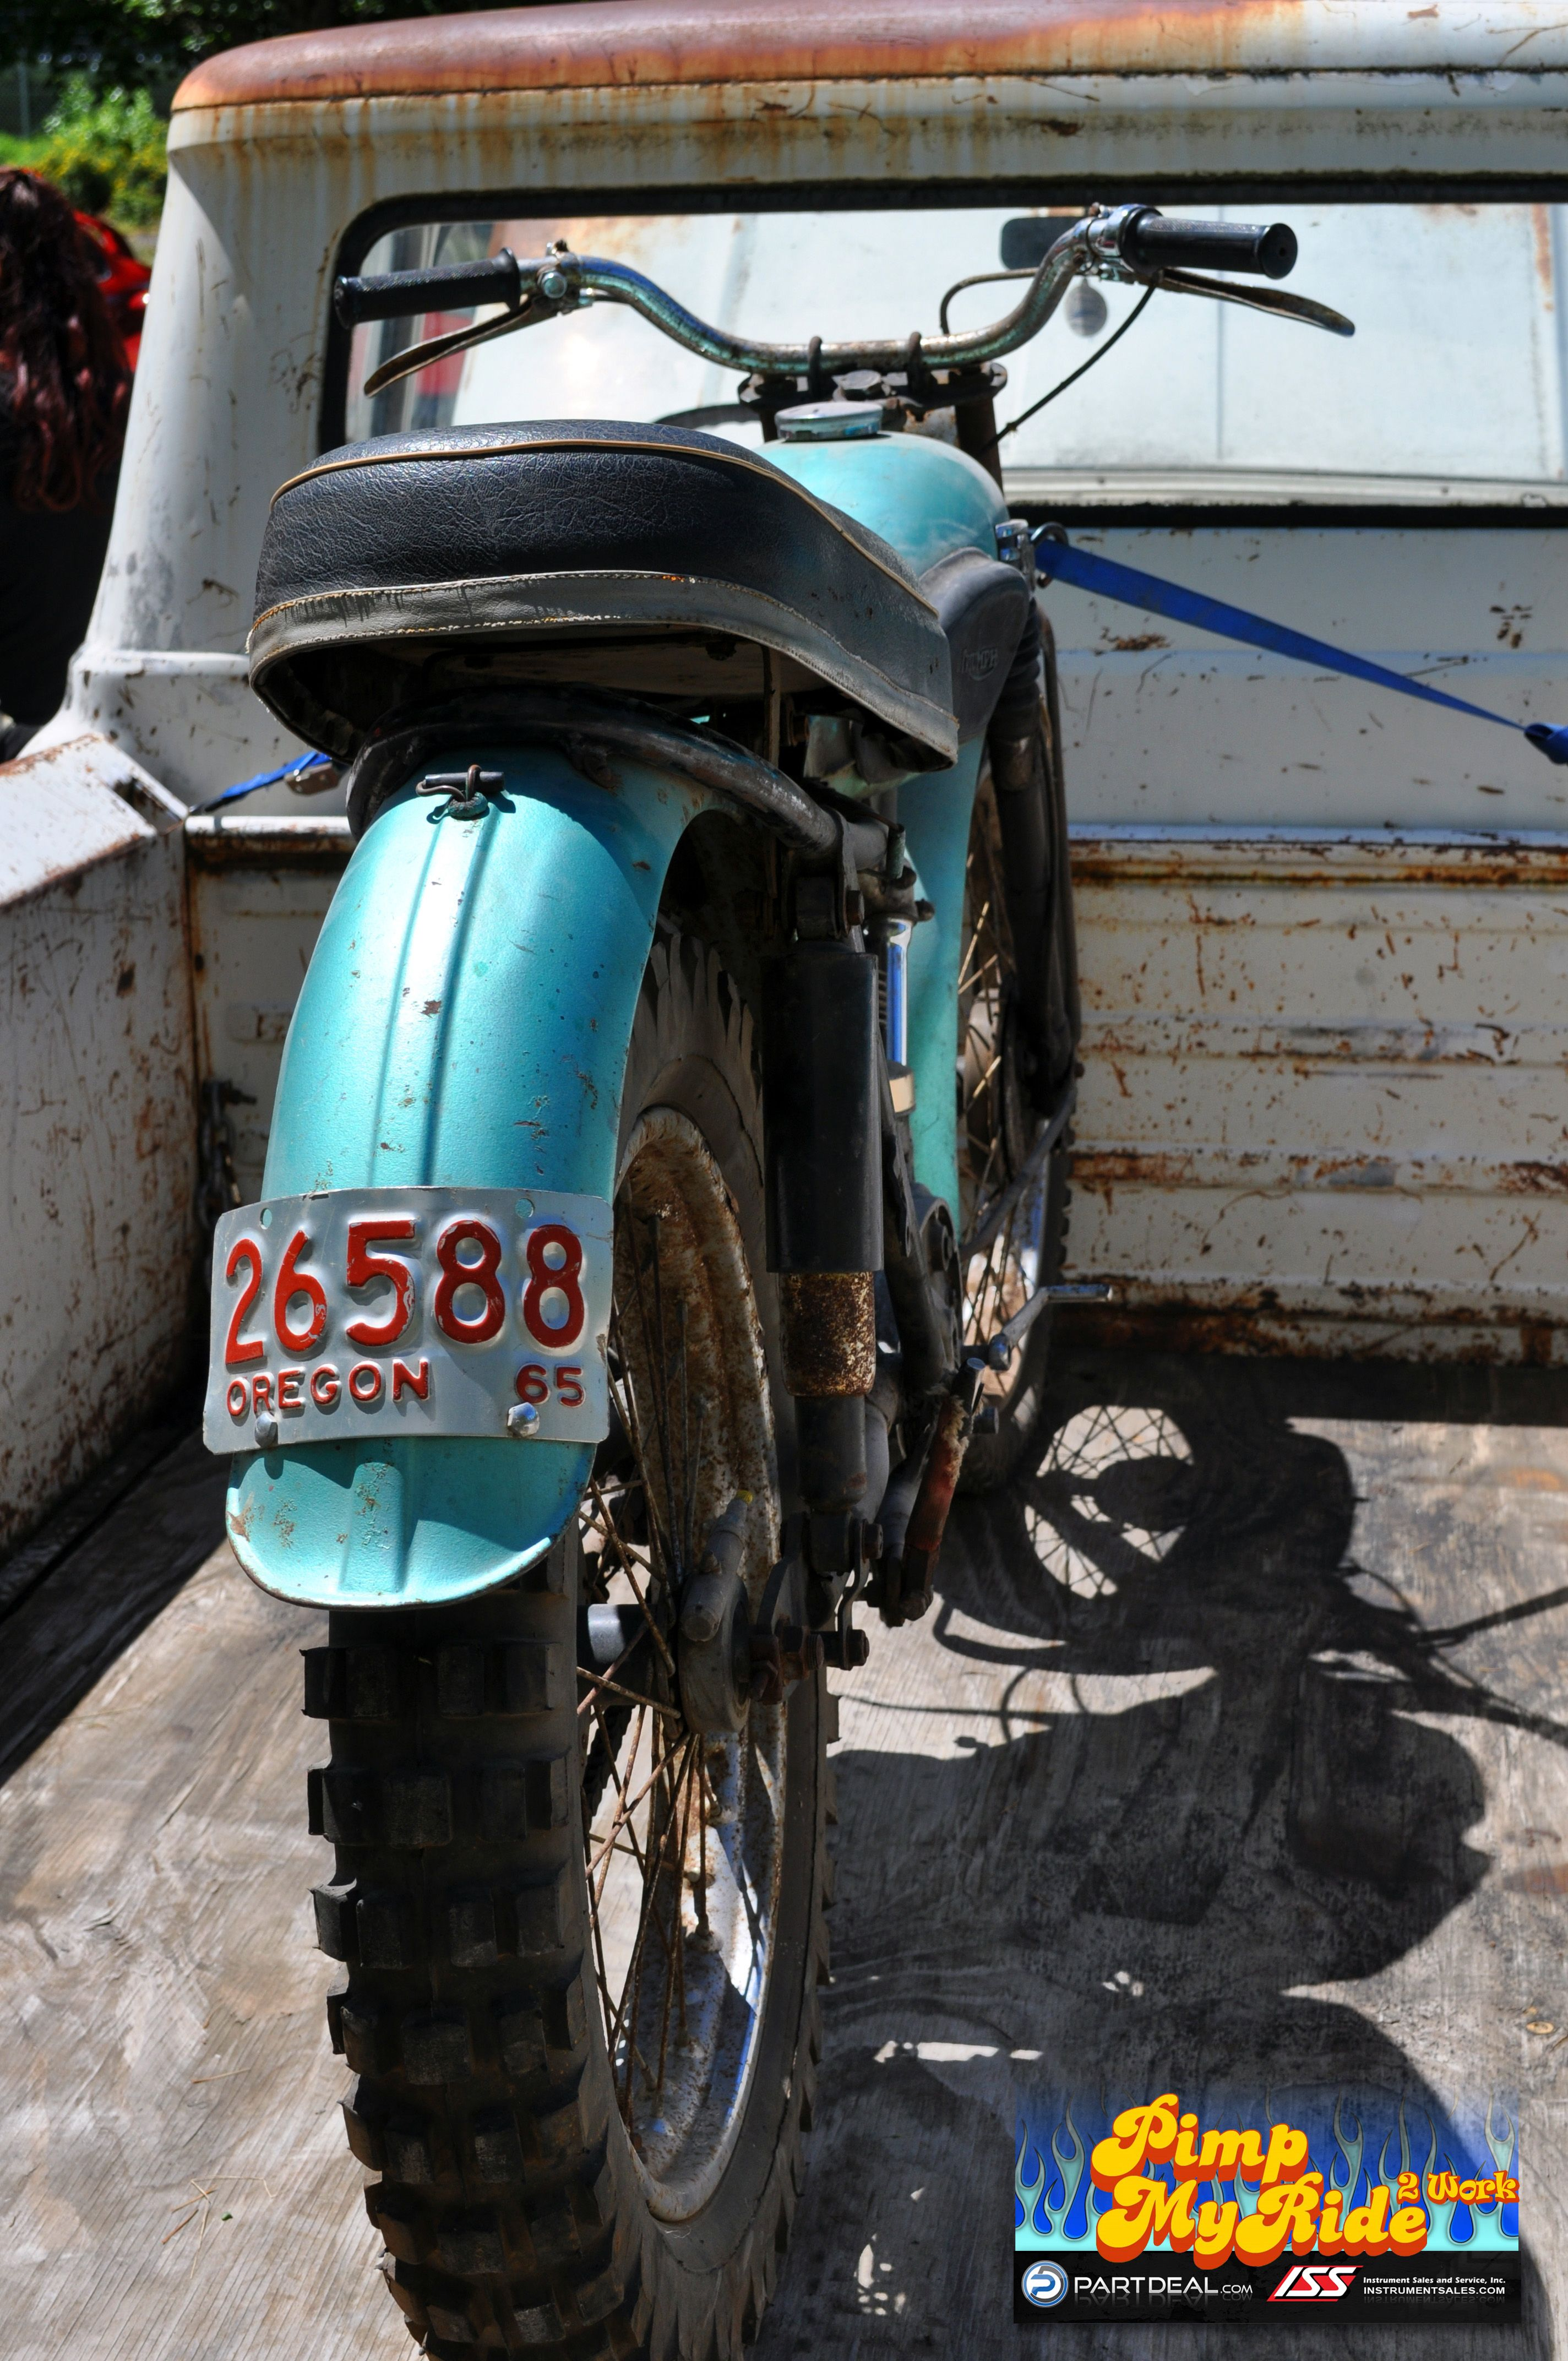 1958 Triumph Motorcycle bloggallery